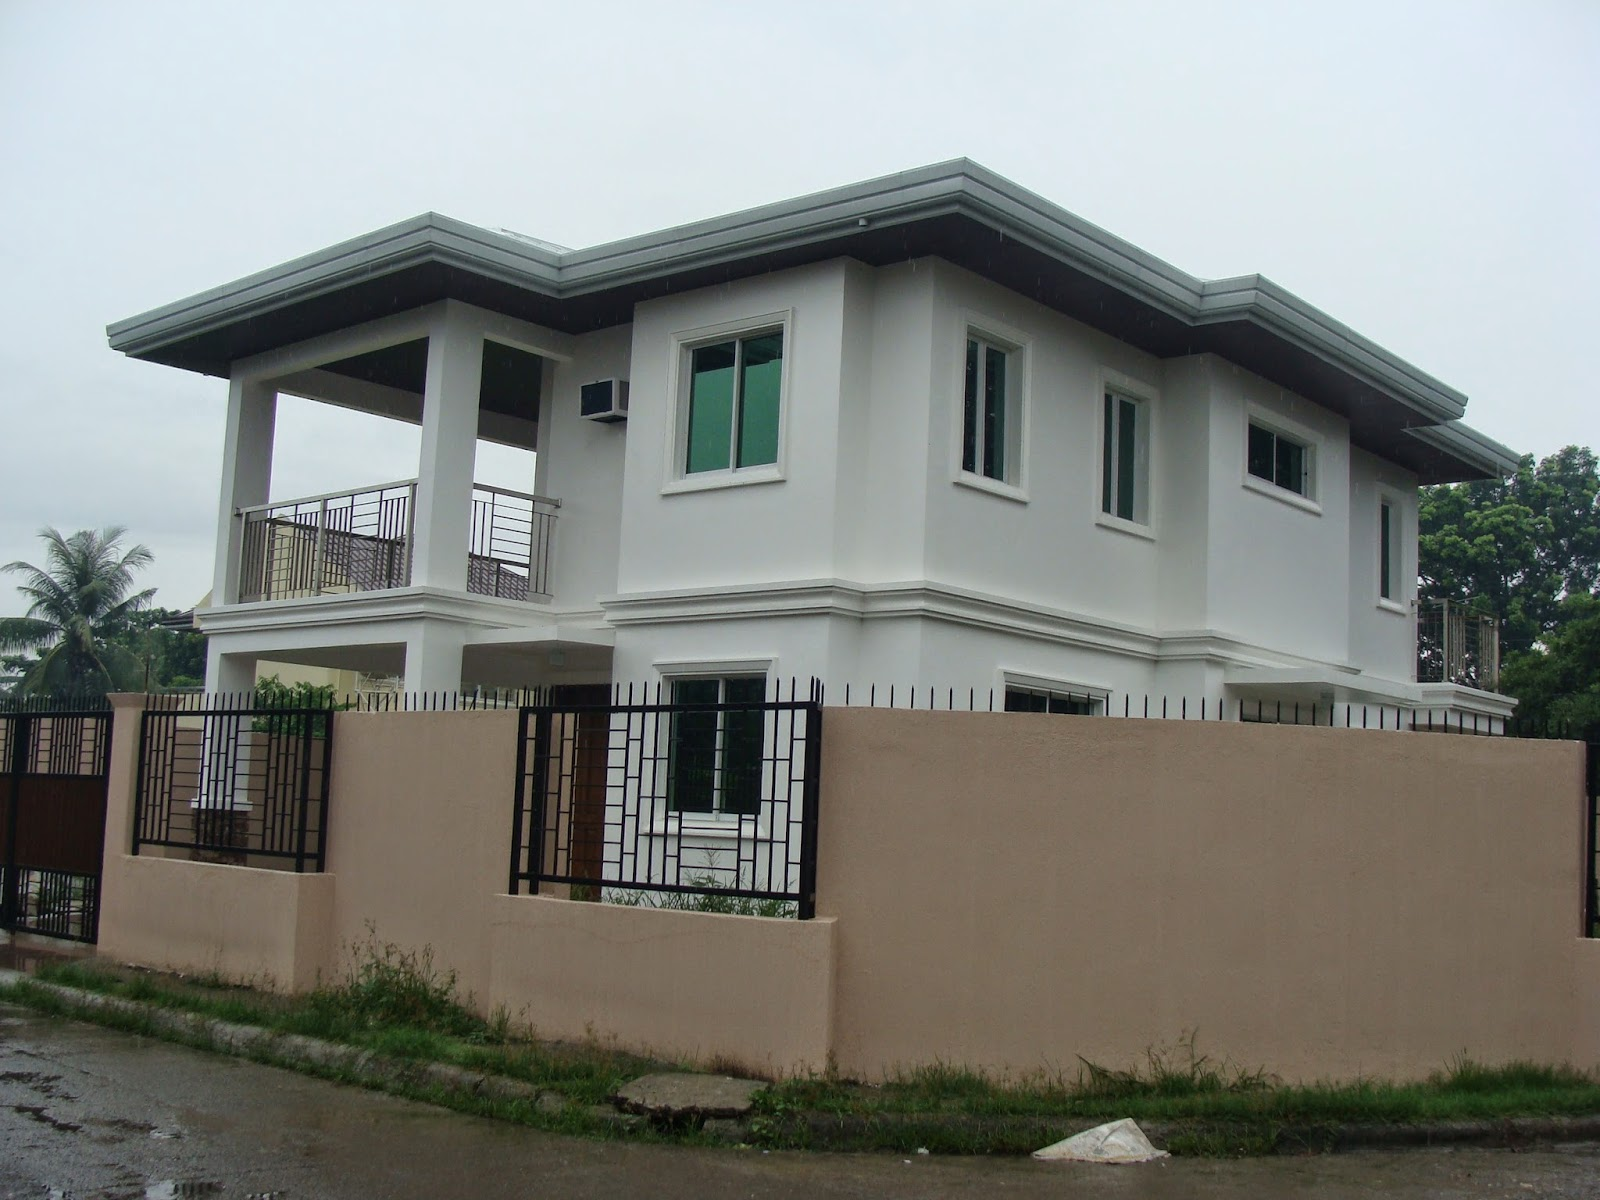 Glenville subdivision house construction project in for Filipino house design